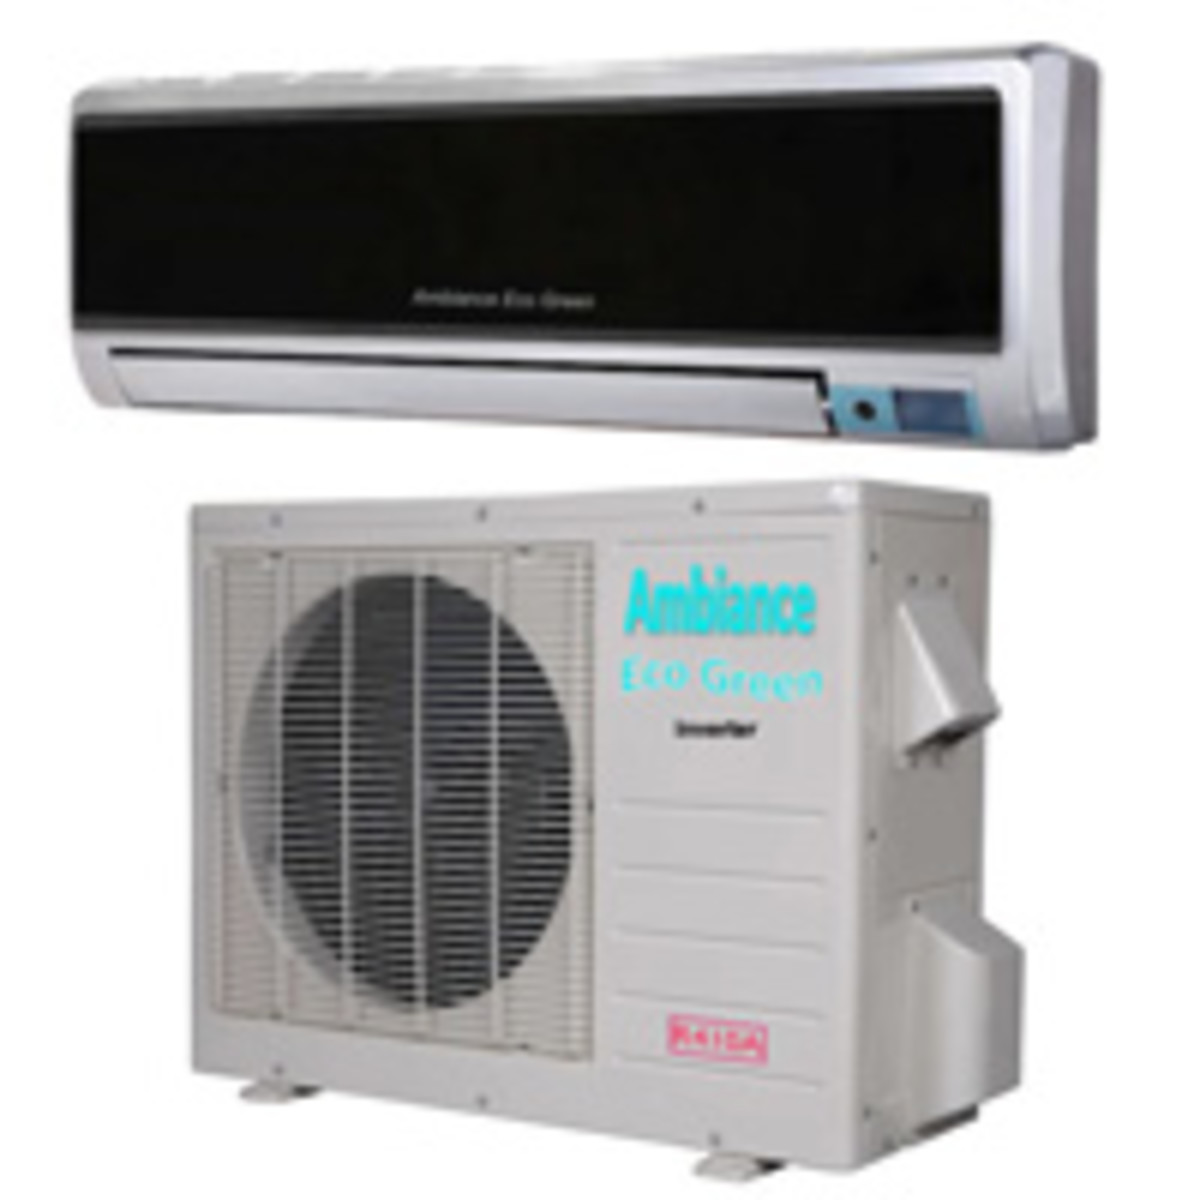 Ambiance Eco Green, A Smarter, More Efficient Air Conditioning System For Homes